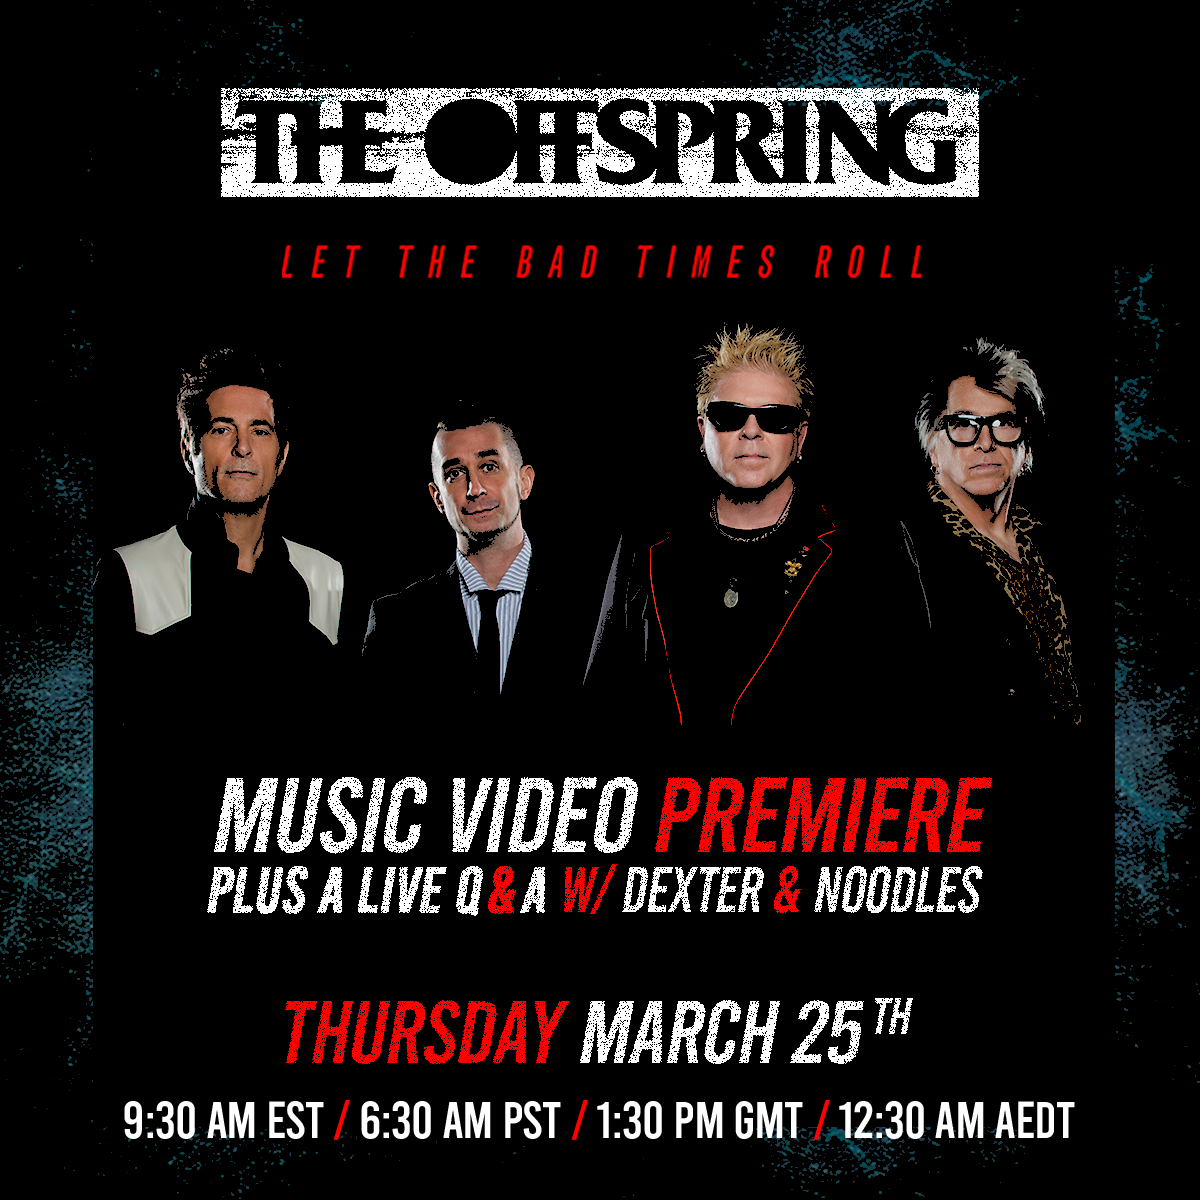 LET THE BAD TIMES ROLL MUSIC VIDEO PREMIERE